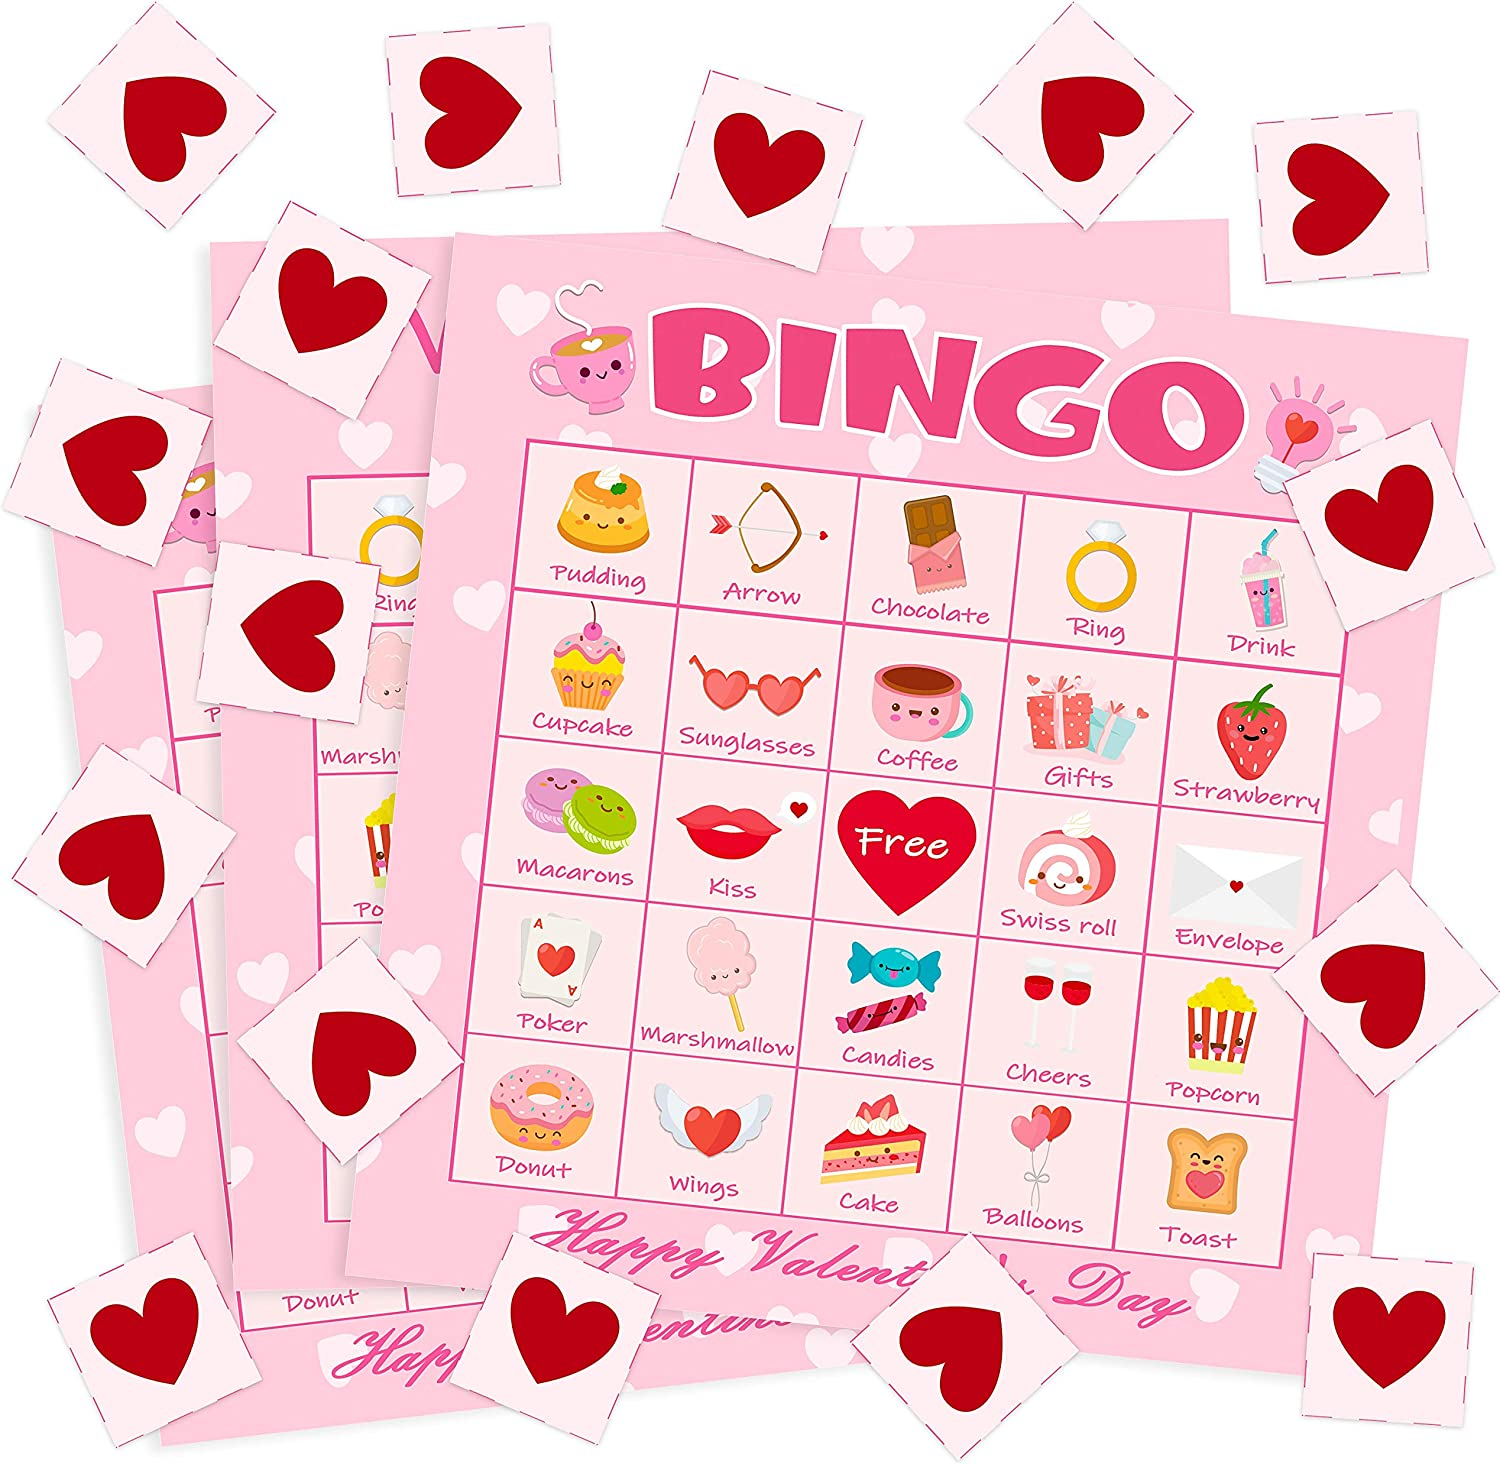 Family /& Kids,Valentines Day School Classroom /& Family Activities Crafts,Valentines Day Party Games Favors Supplies-Pink FUNNISM Valentines Day Bingo Game Cards,24-players Bingo Card Games for Adults